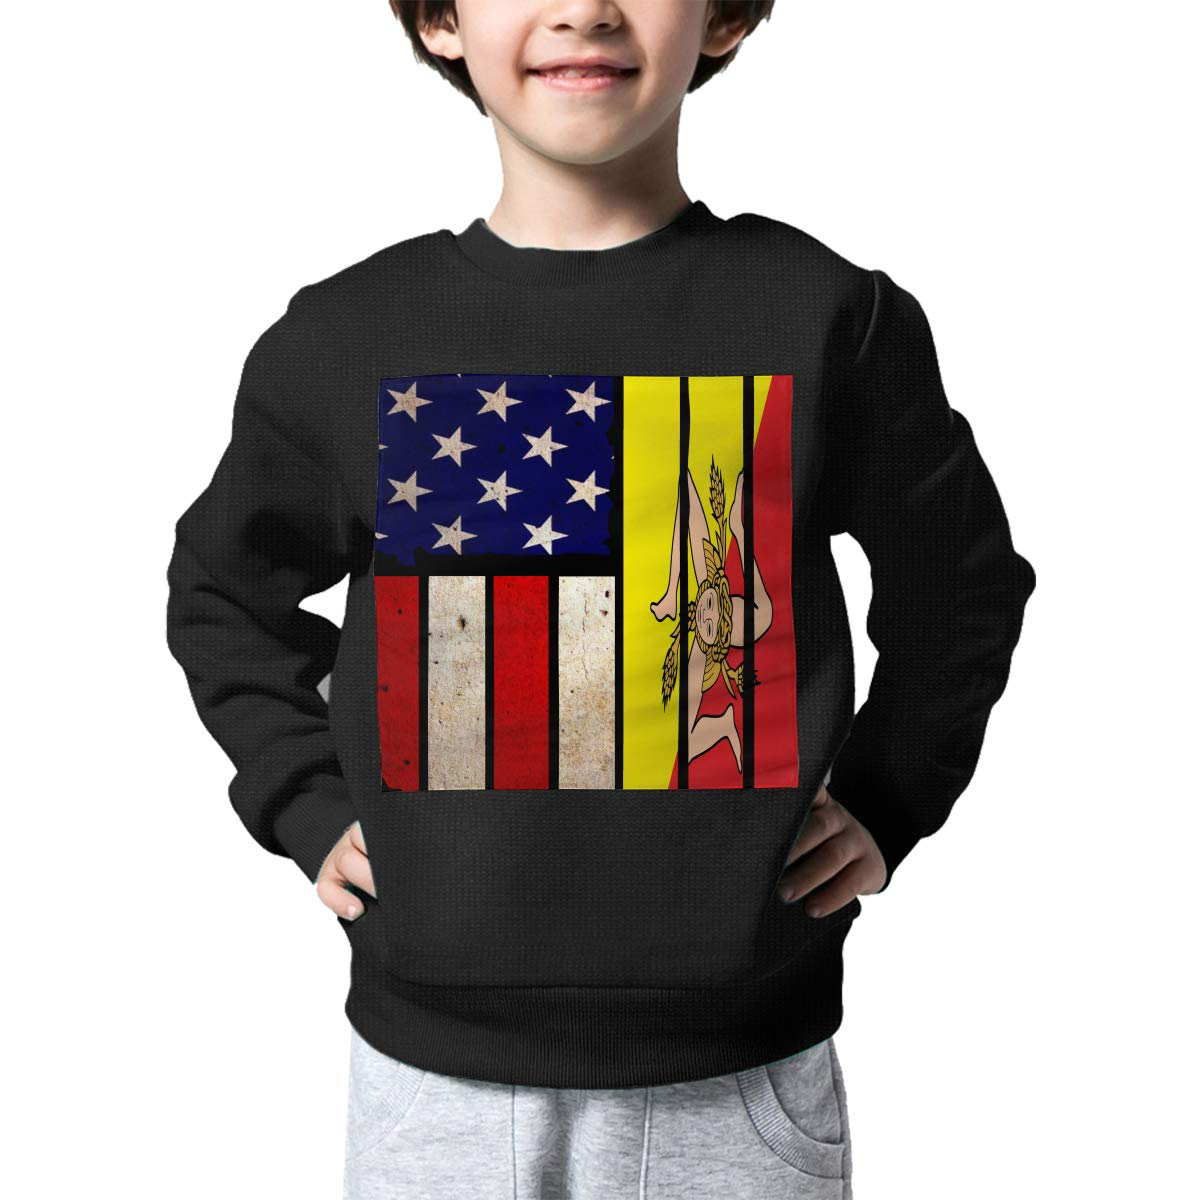 Boys Girls Vintage USA Sicily Flag Lovely Sweaters Soft Warm Childrens Sweater